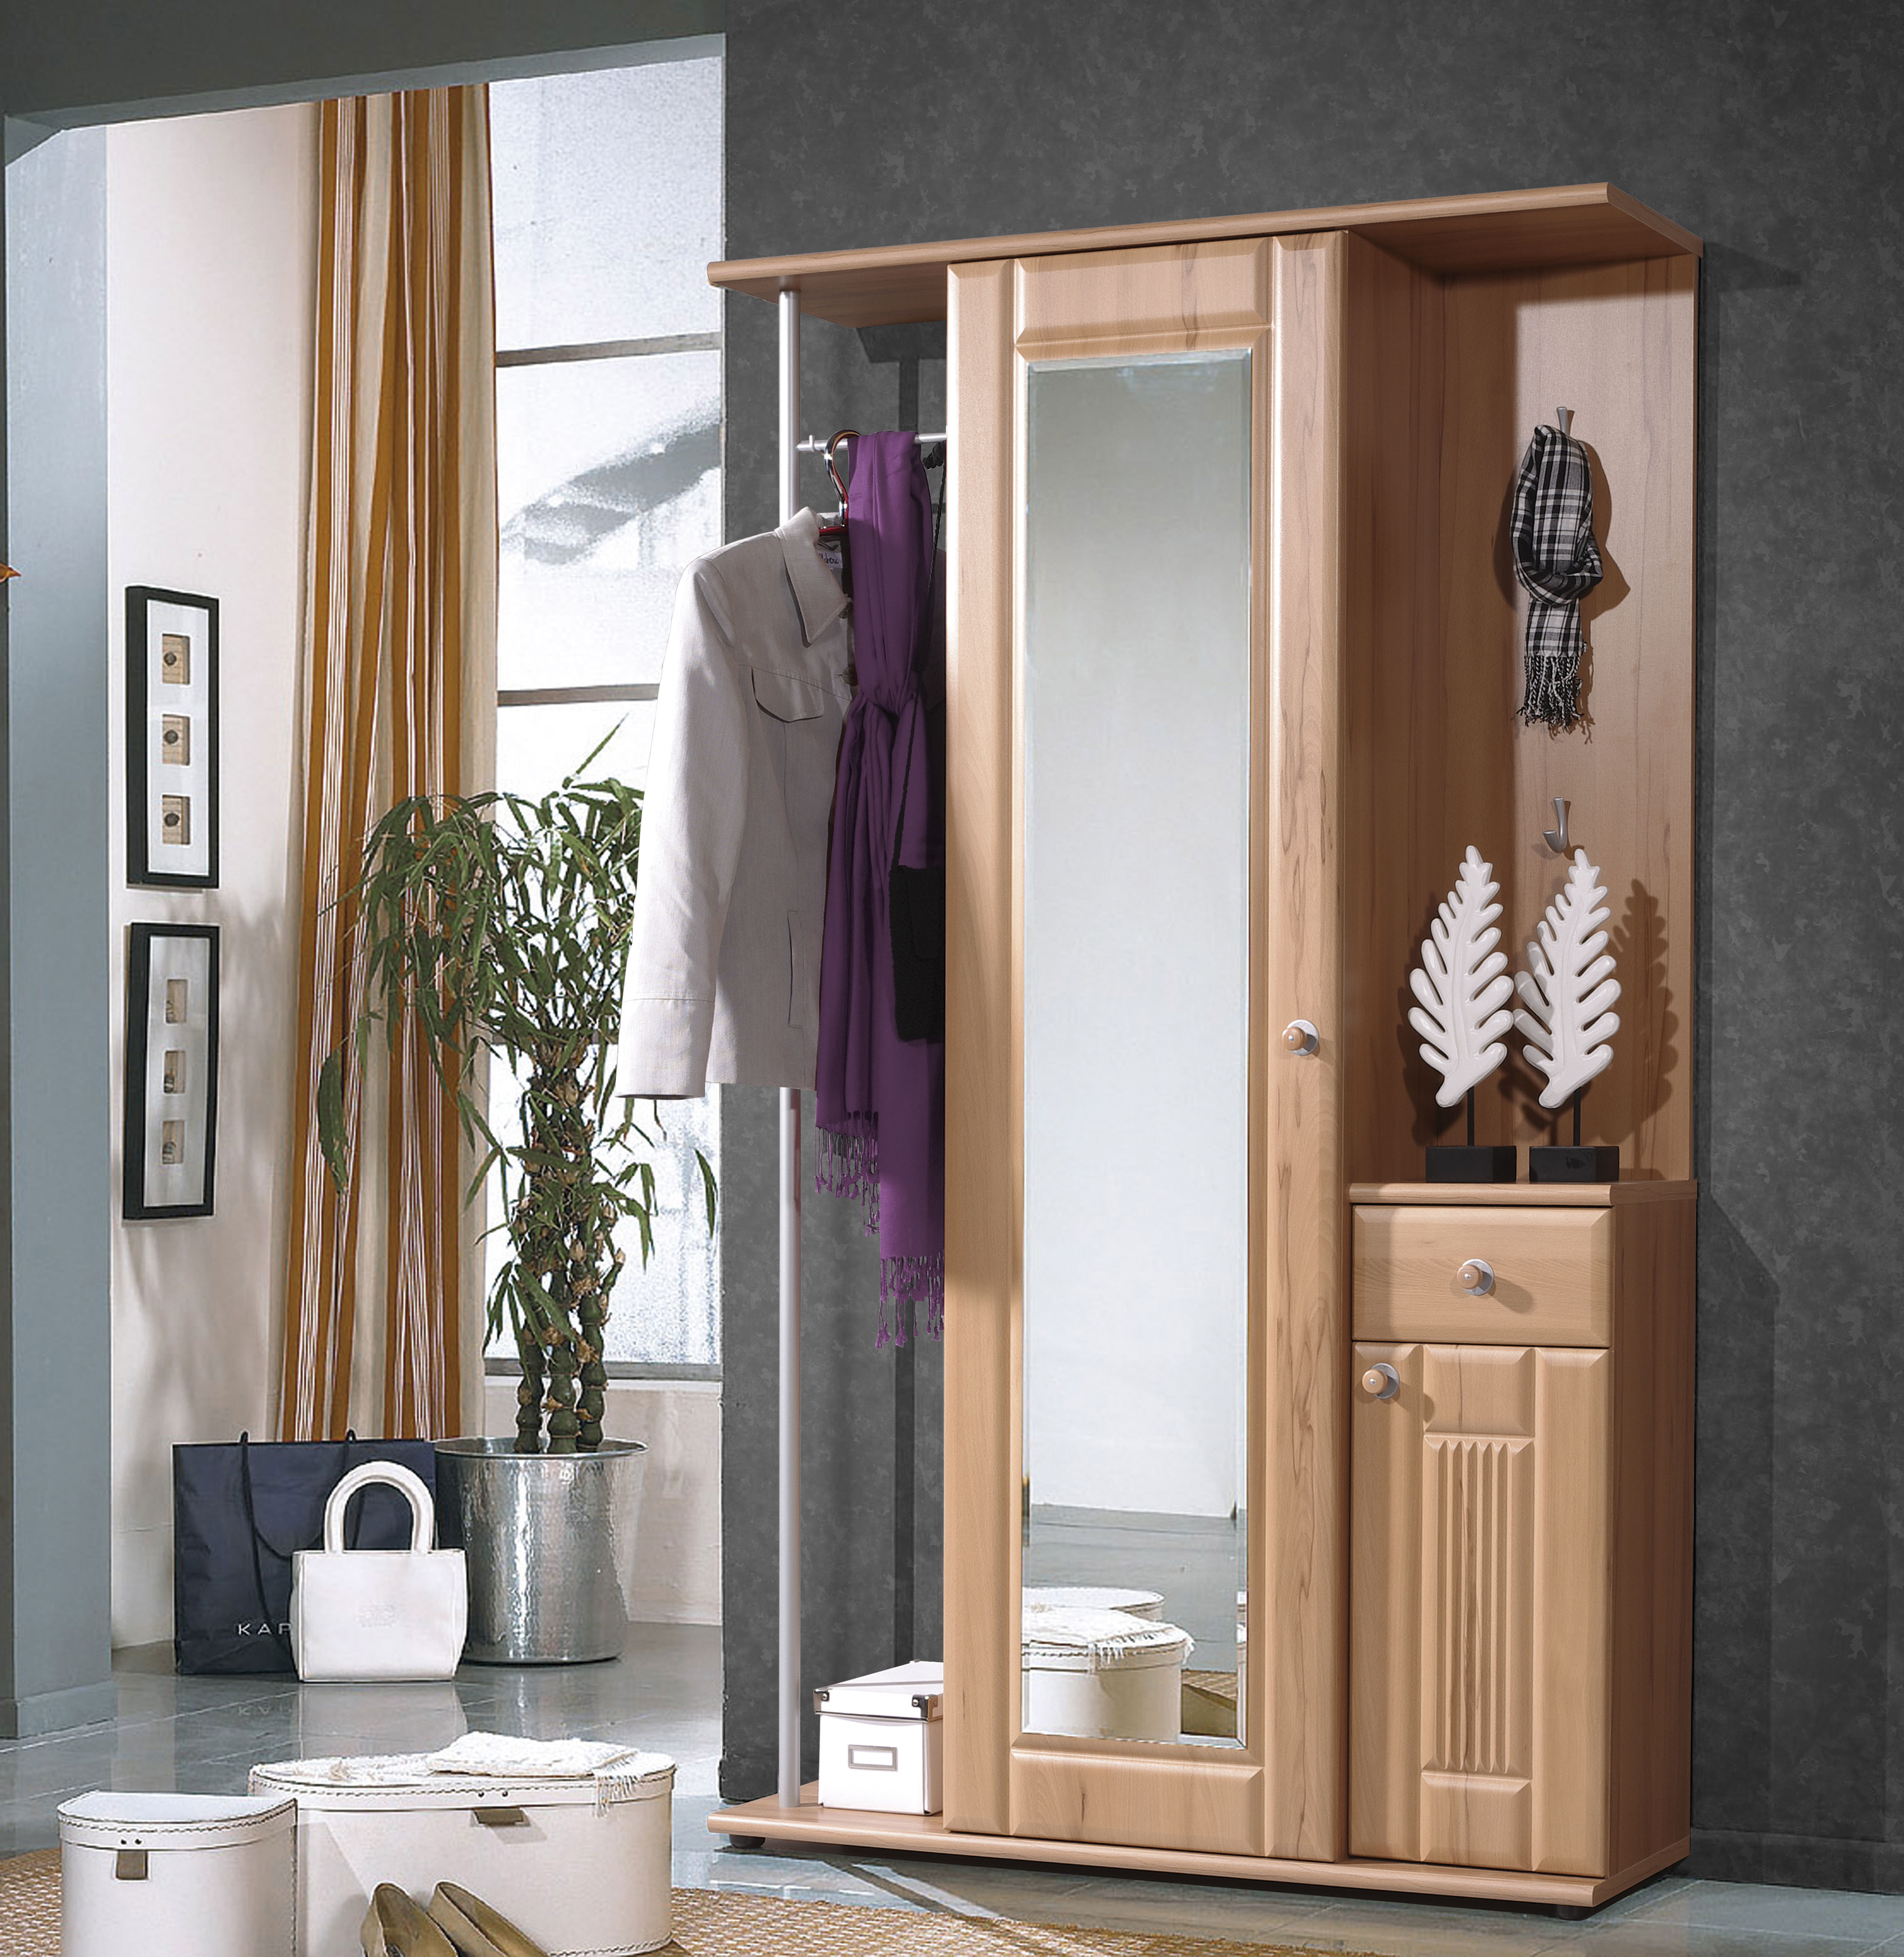 garderobenschrank kompaktgarderobe kleiderschrank schrank mod gm315 kernbuche ebay. Black Bedroom Furniture Sets. Home Design Ideas